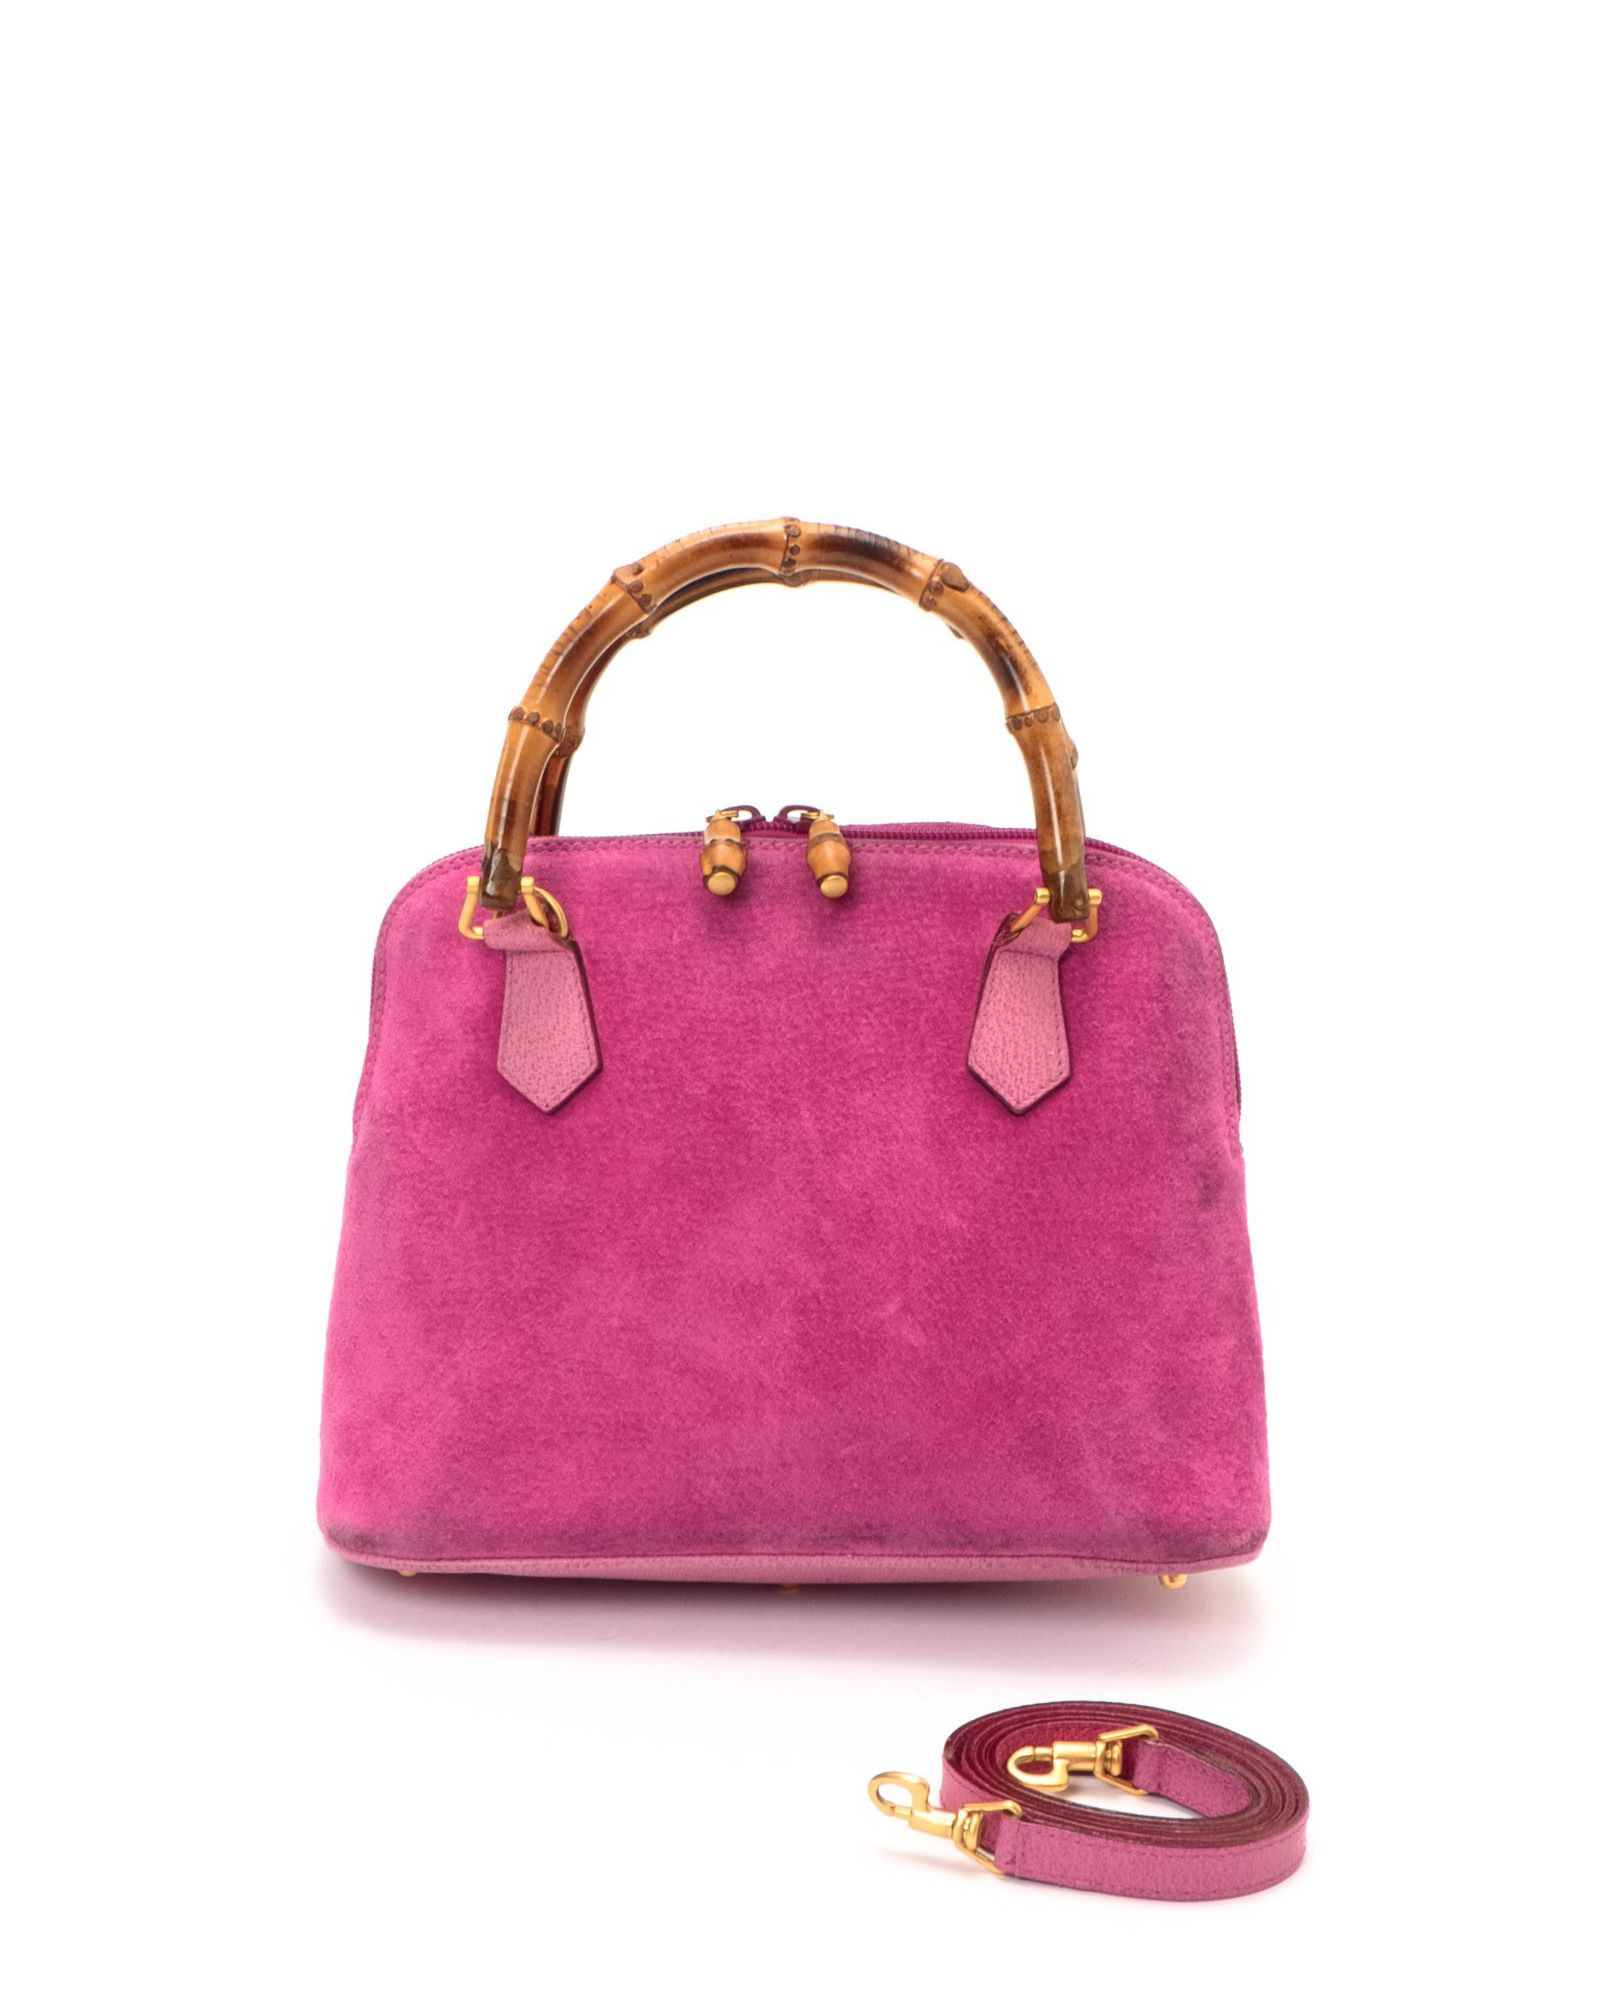 Gucci Pink Bamboo Two-Way Bag - Vintage